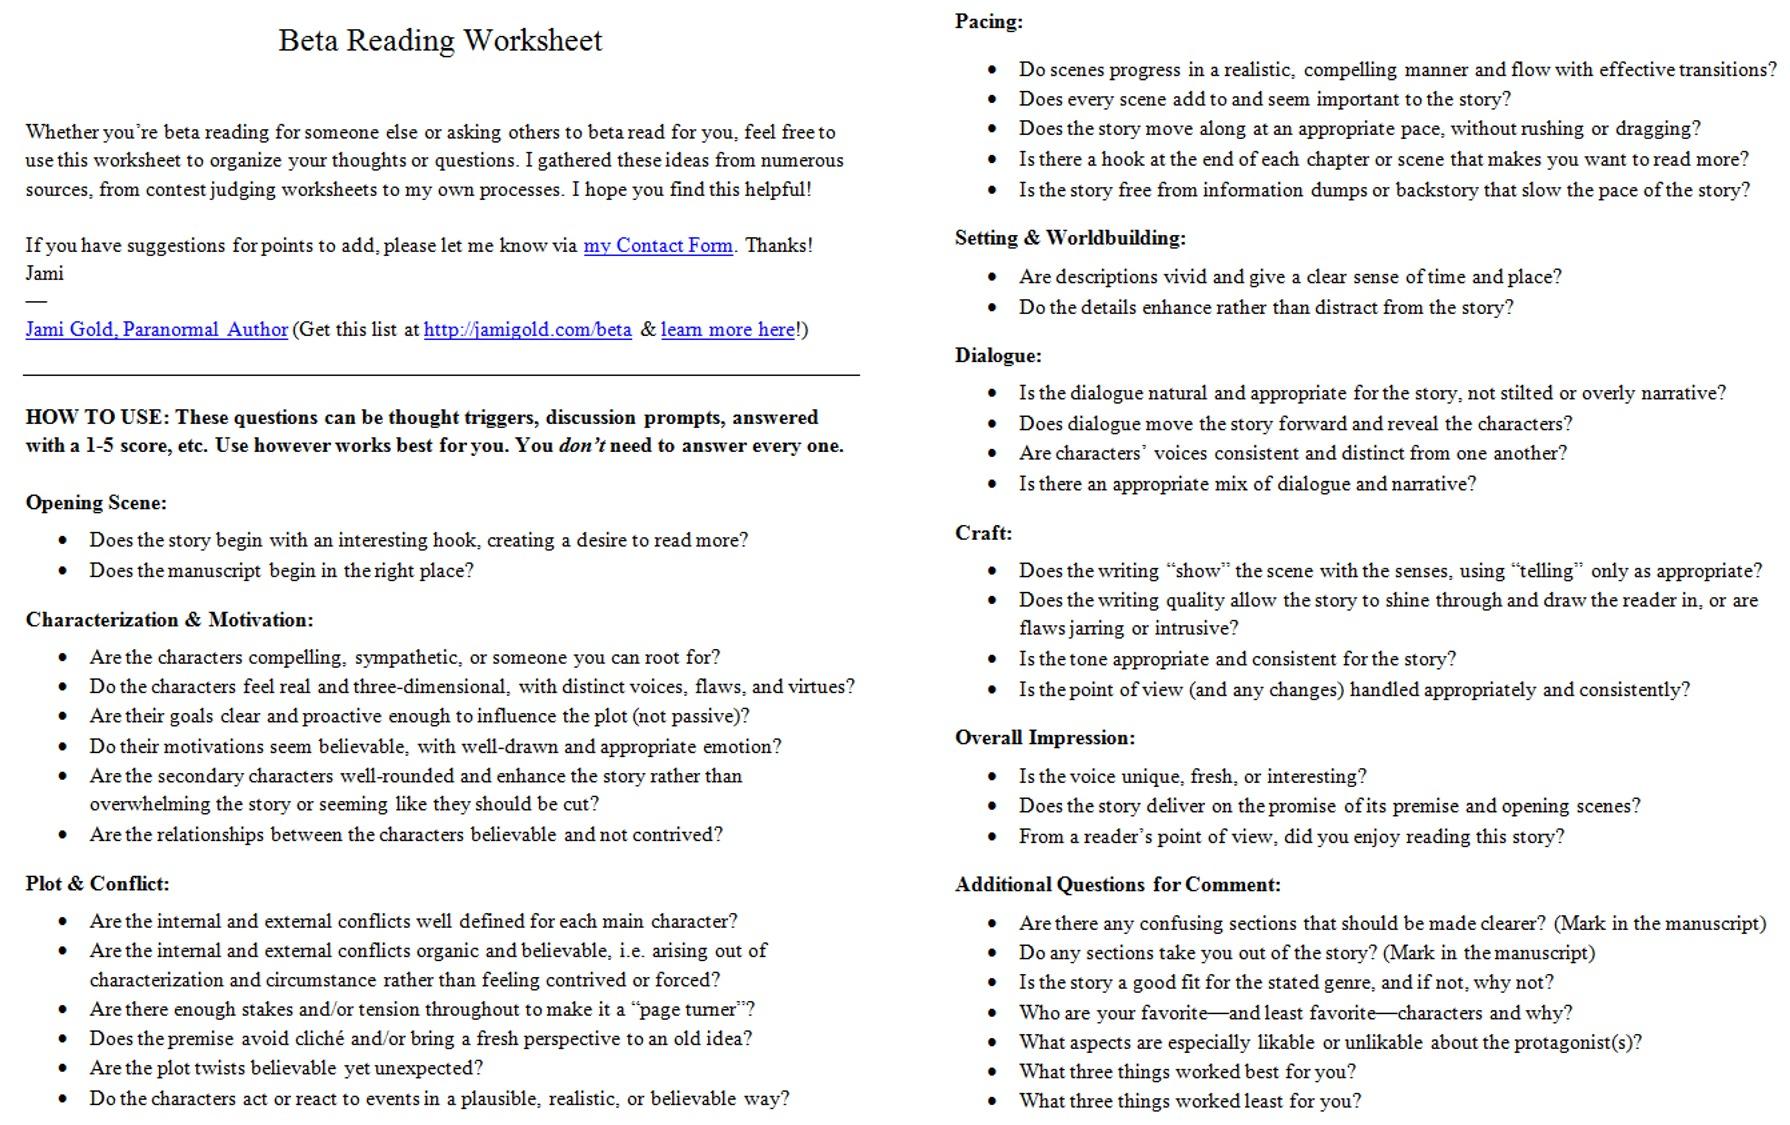 Proatmealus  Fascinating Worksheets For Writers  Jami Gold Paranormal Author With Gorgeous Screen Shot Of The Twopage Beta Reading Worksheet With Astonishing Free Printable Maths Worksheets Secondary Also Slope Worksheets Free In Addition Phase  Phonics Worksheets Free And Is And Are Worksheets For Grade  As Well As Sudoku Printable Worksheets Additionally Grade  Place Value Worksheets From Jamigoldcom With Proatmealus  Gorgeous Worksheets For Writers  Jami Gold Paranormal Author With Astonishing Screen Shot Of The Twopage Beta Reading Worksheet And Fascinating Free Printable Maths Worksheets Secondary Also Slope Worksheets Free In Addition Phase  Phonics Worksheets Free From Jamigoldcom